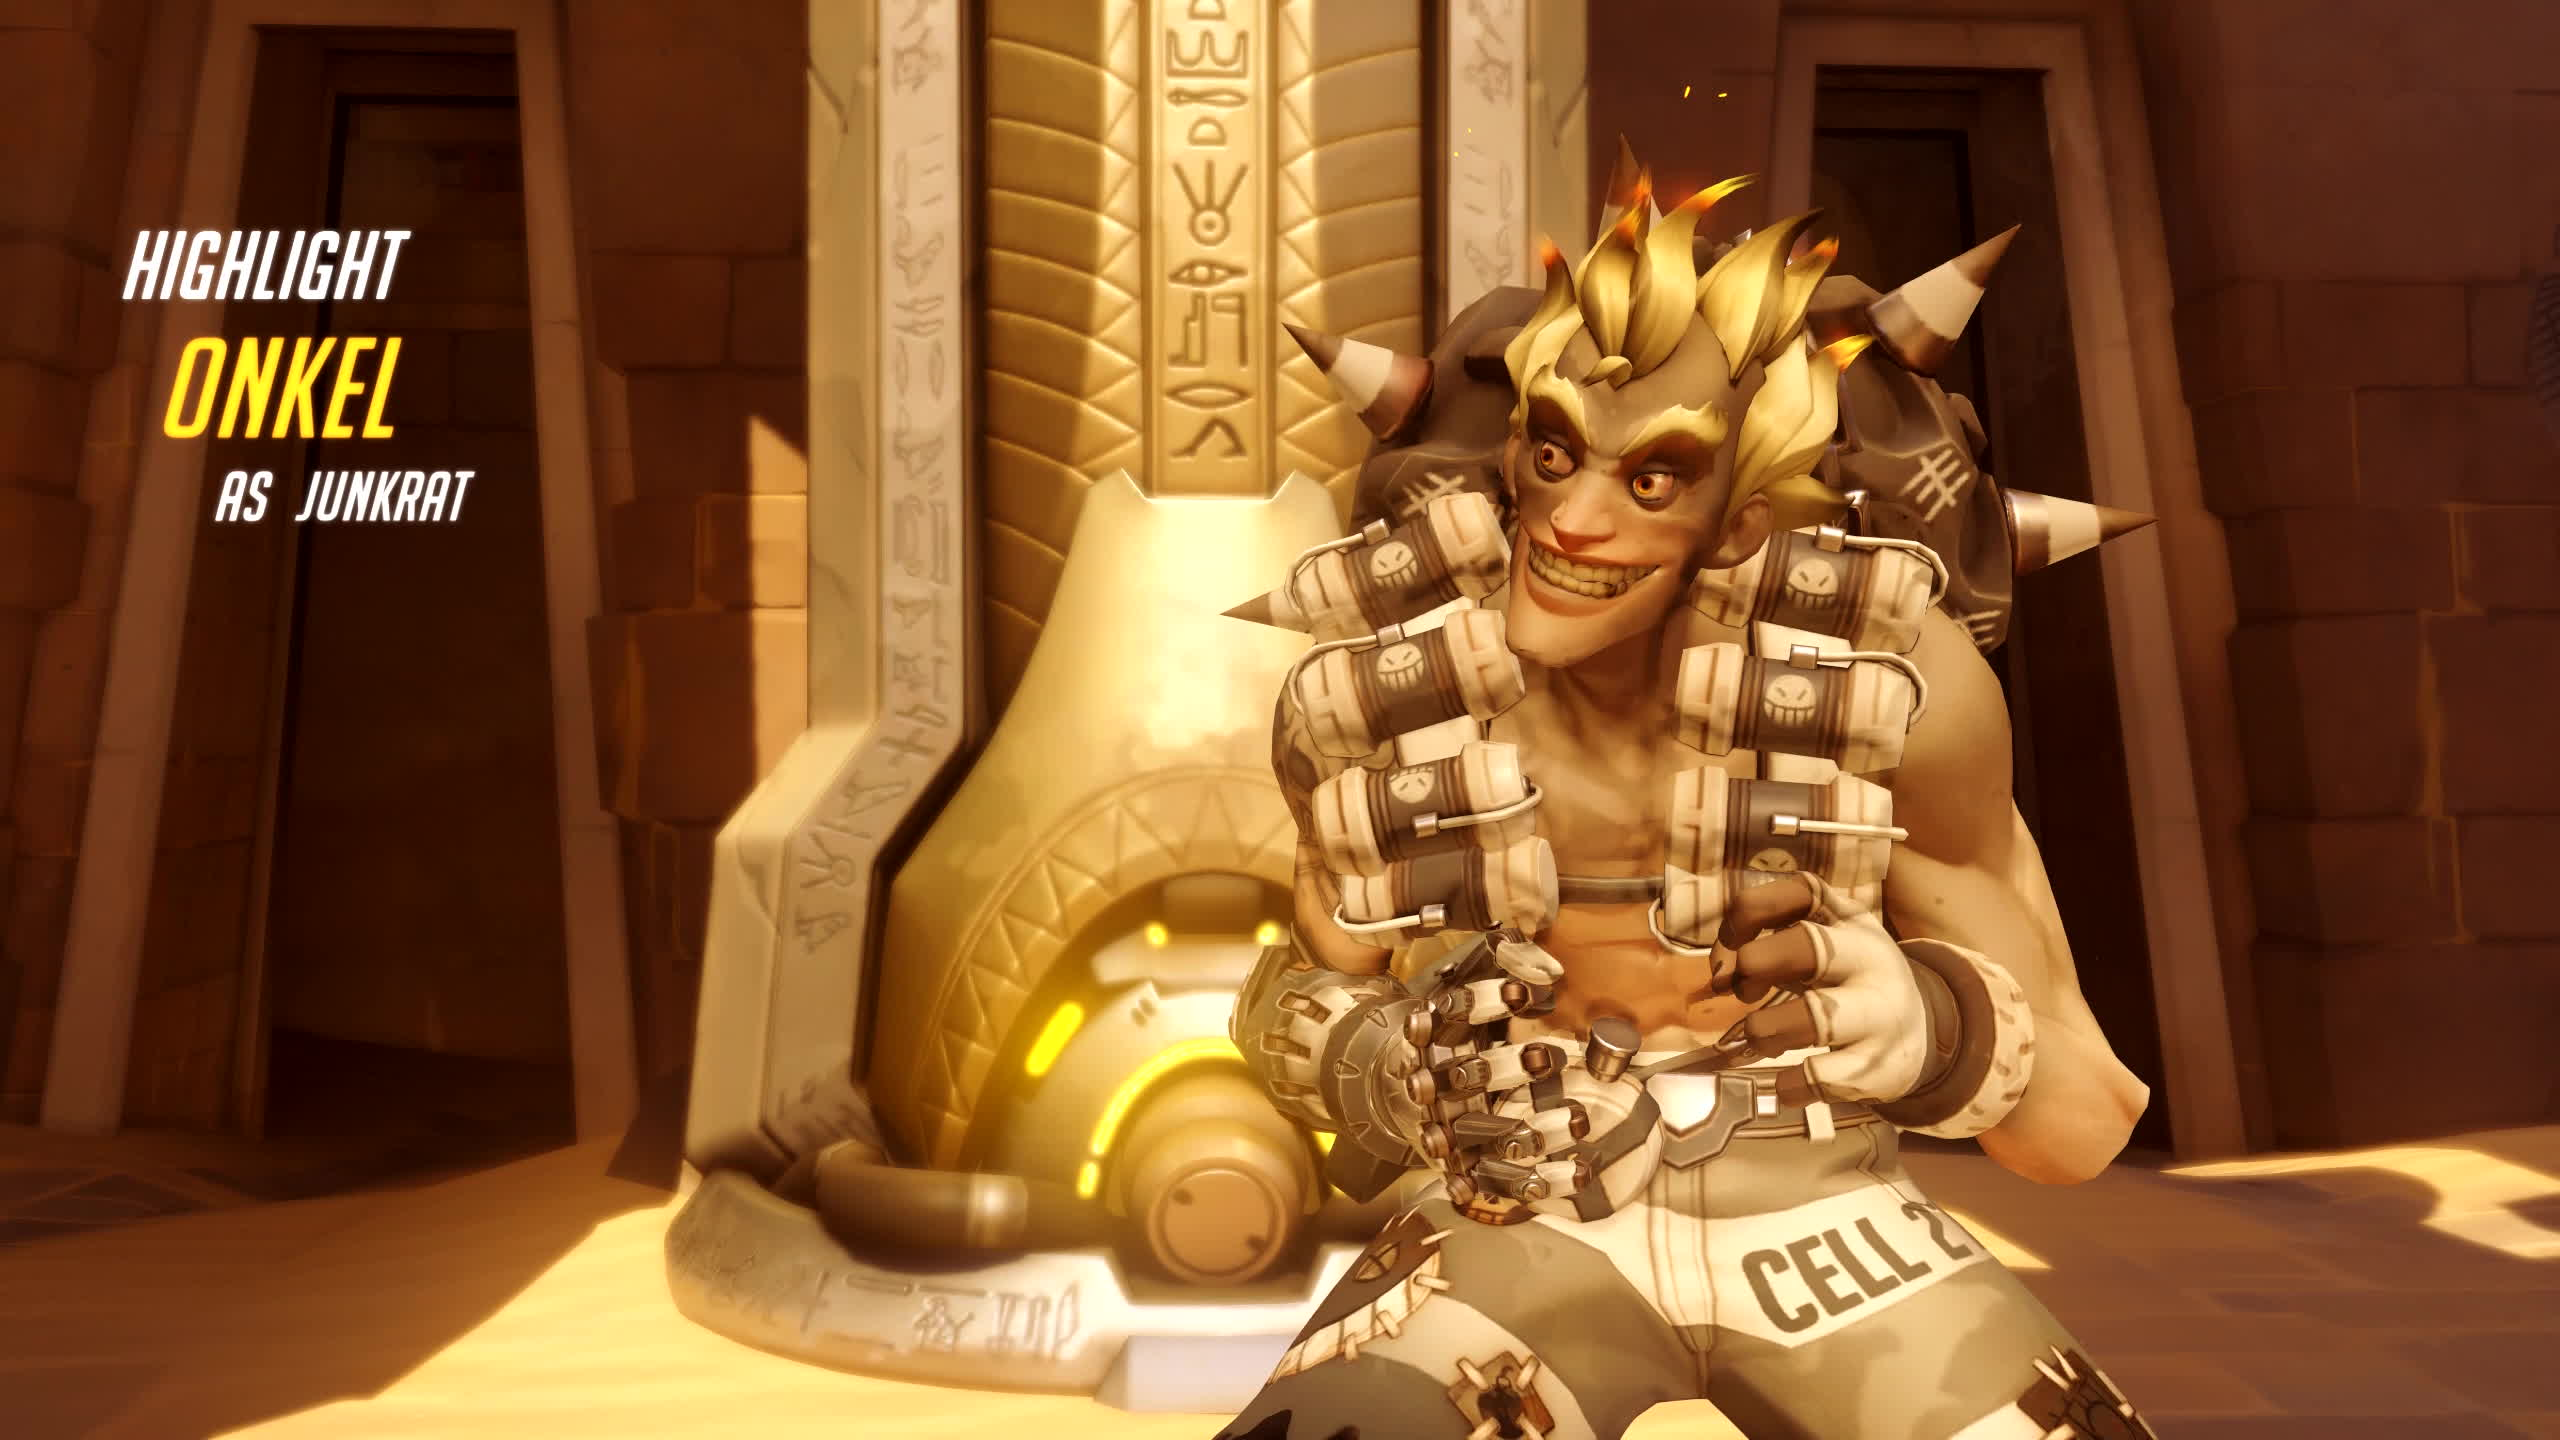 junkrat, owerwatch, Close call point GIFs